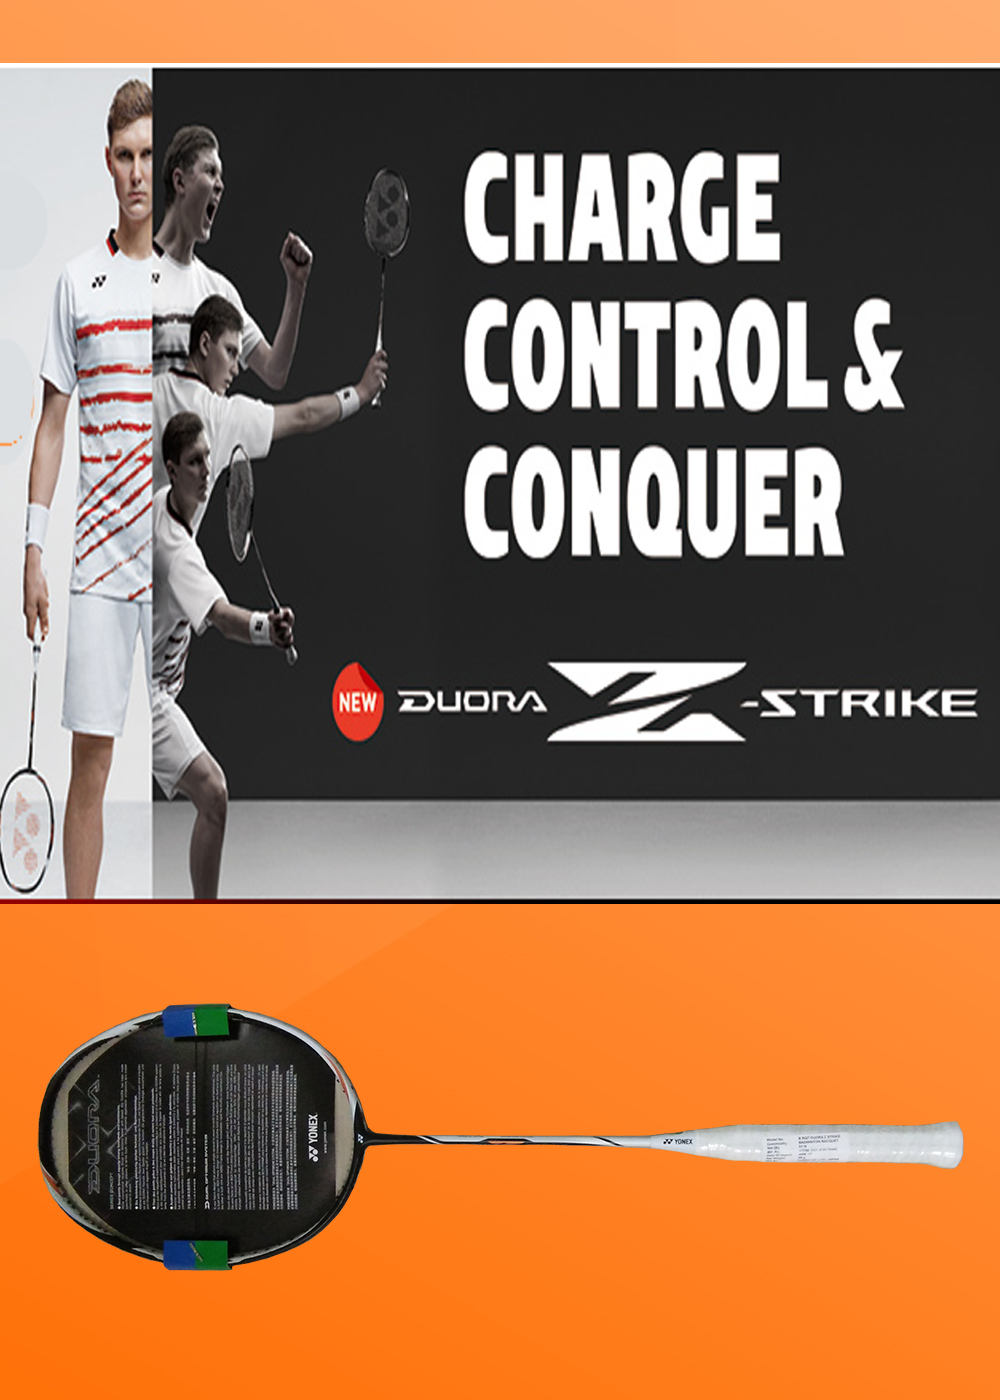 YONEX DUORA Z STRIKE RACKETIMAGE AND PLAYER